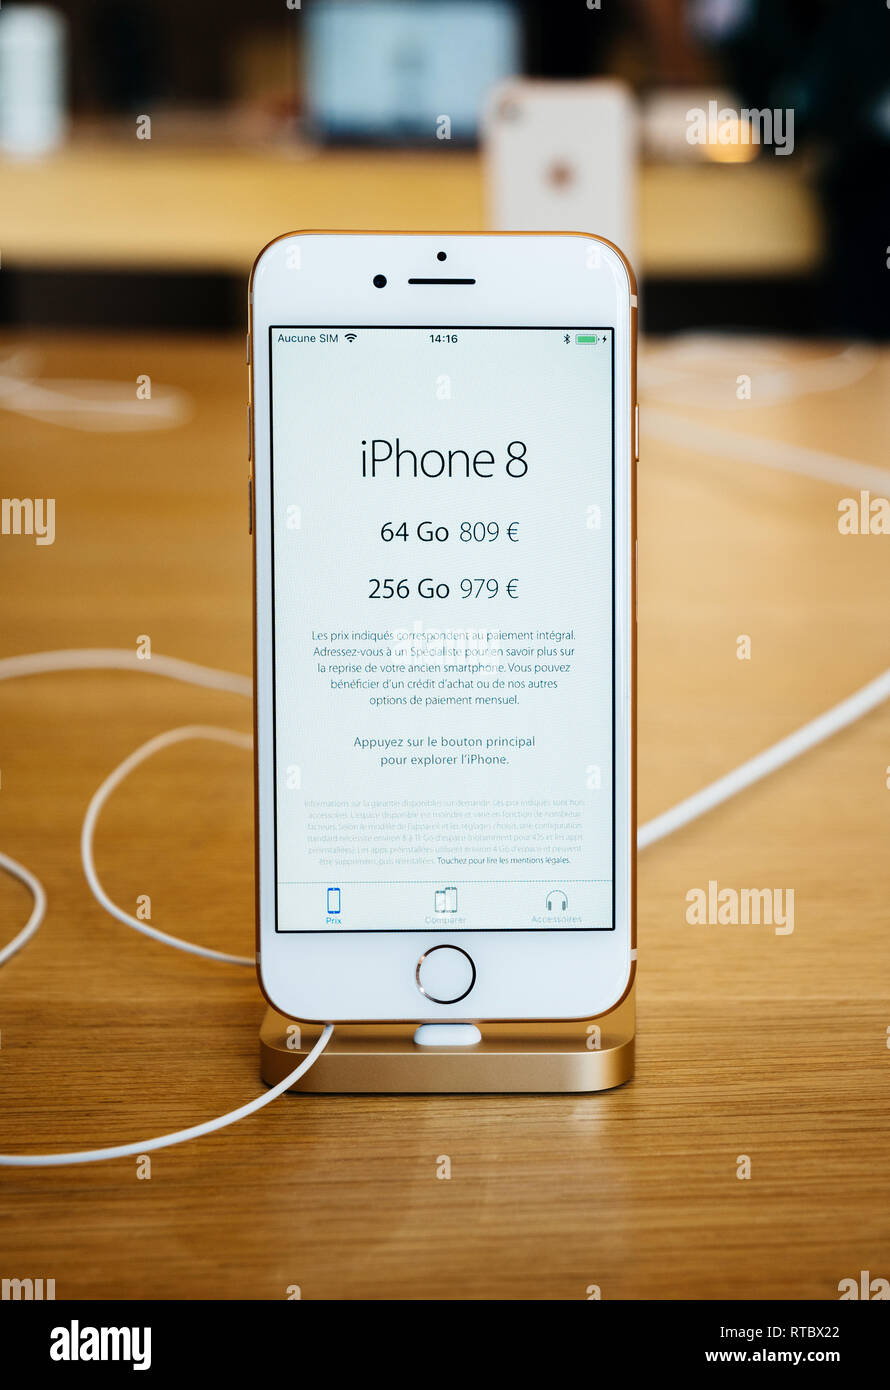 PARIS, FRANCE - SEP 22, 2017: New iPhone 8 and iPhone 8 Plus, as well the updated Apple Watch, Apple TV goes on sale today in Apple Store with price for the device in Euros  Stock Photo